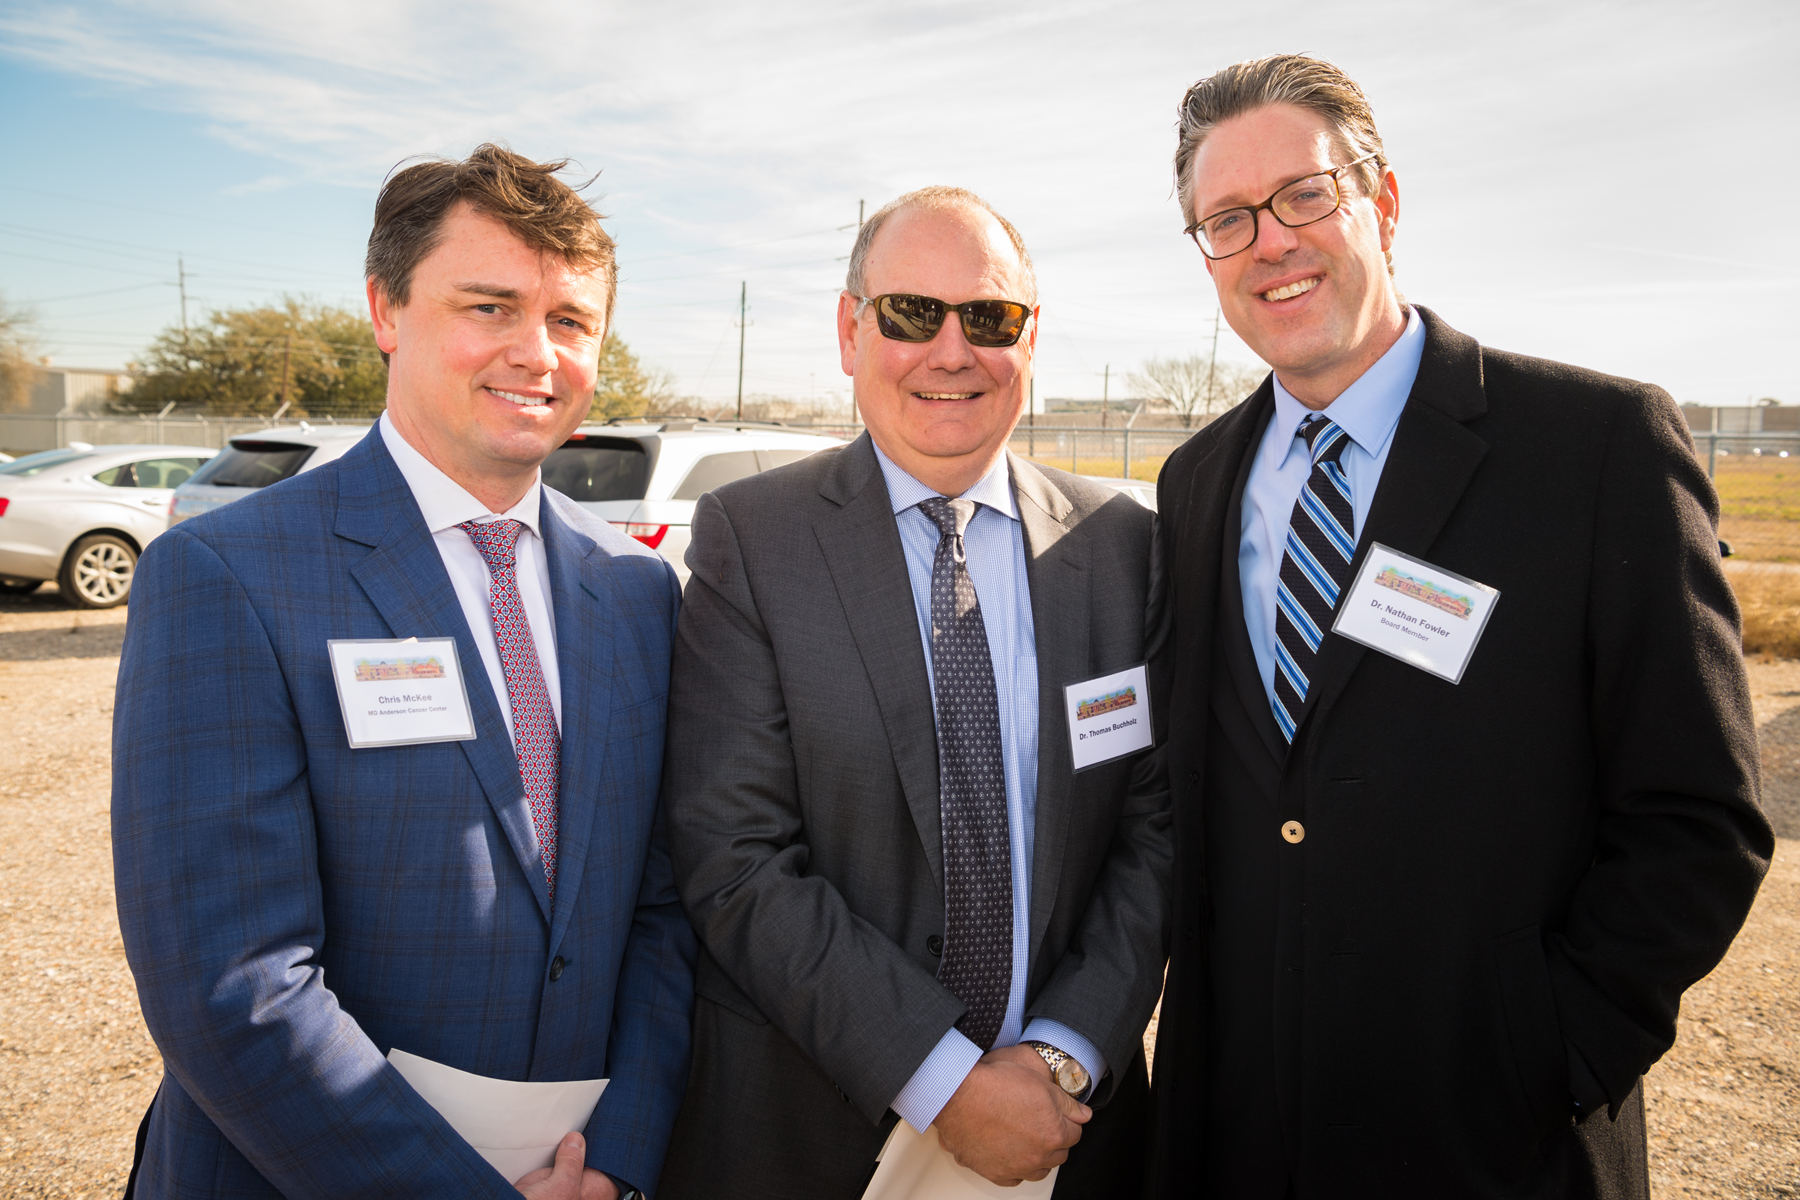 "<div class=""meta image-caption""><div class=""origin-logo origin-image ktrk""><span>KTRK</span></div><span class=""caption-text"">Chris Mckee, Dr. Thomas Buchholz, and Dr. Nathan Fowler, all of MD Anderson Cancer Center</span></div>"